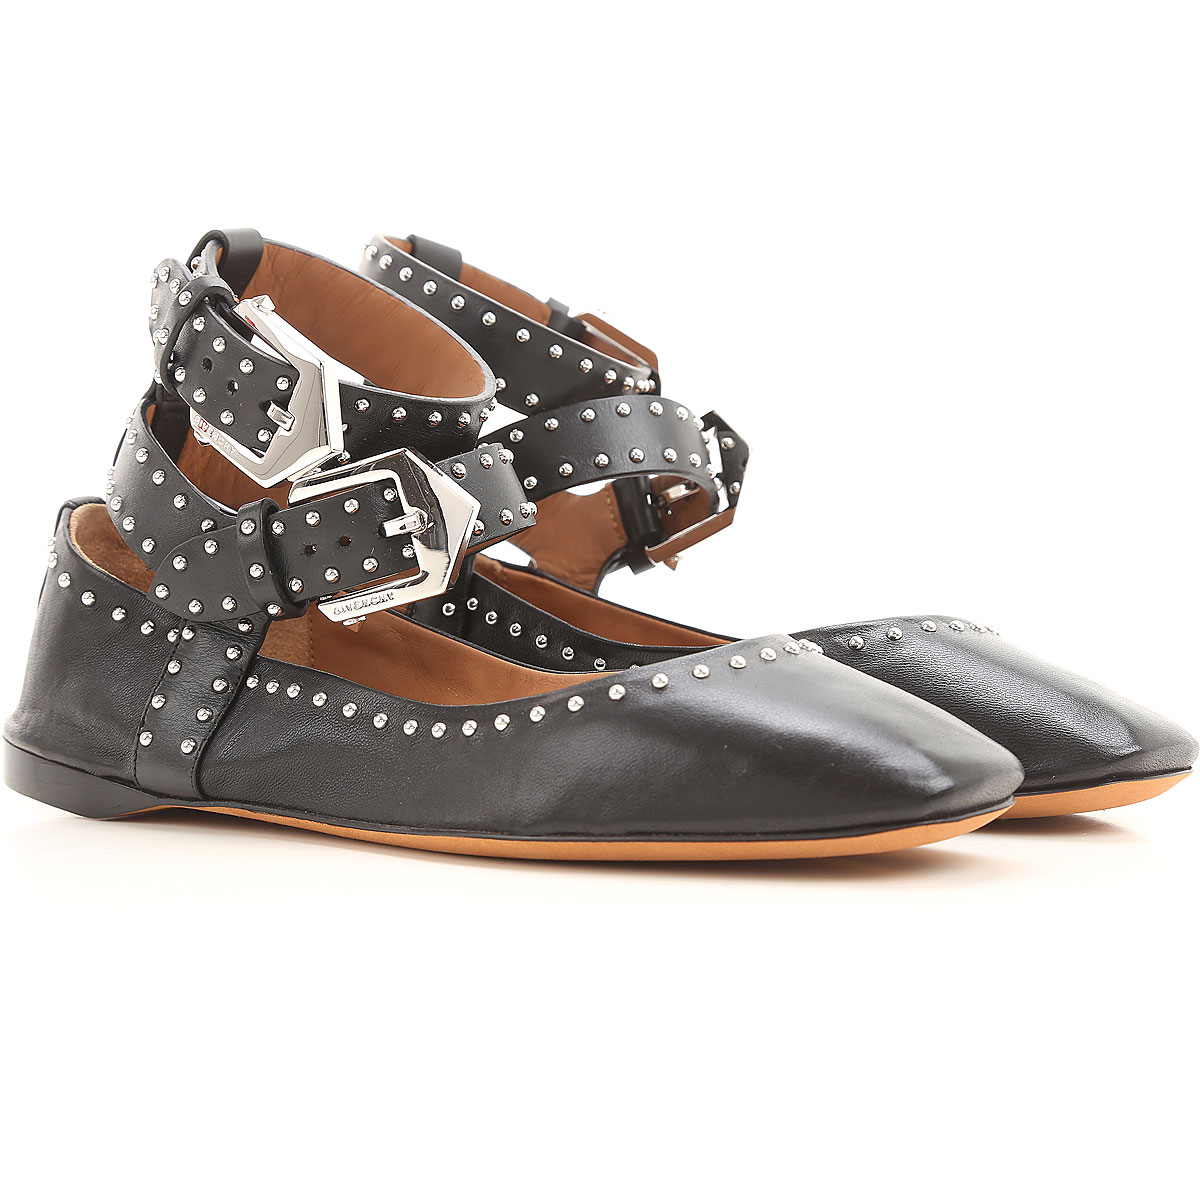 Givenchy Ballet Flats Ballerina Shoes for Women On Sale in Outlet, Black, Leather, 2019, 5 5.5 6 6.5